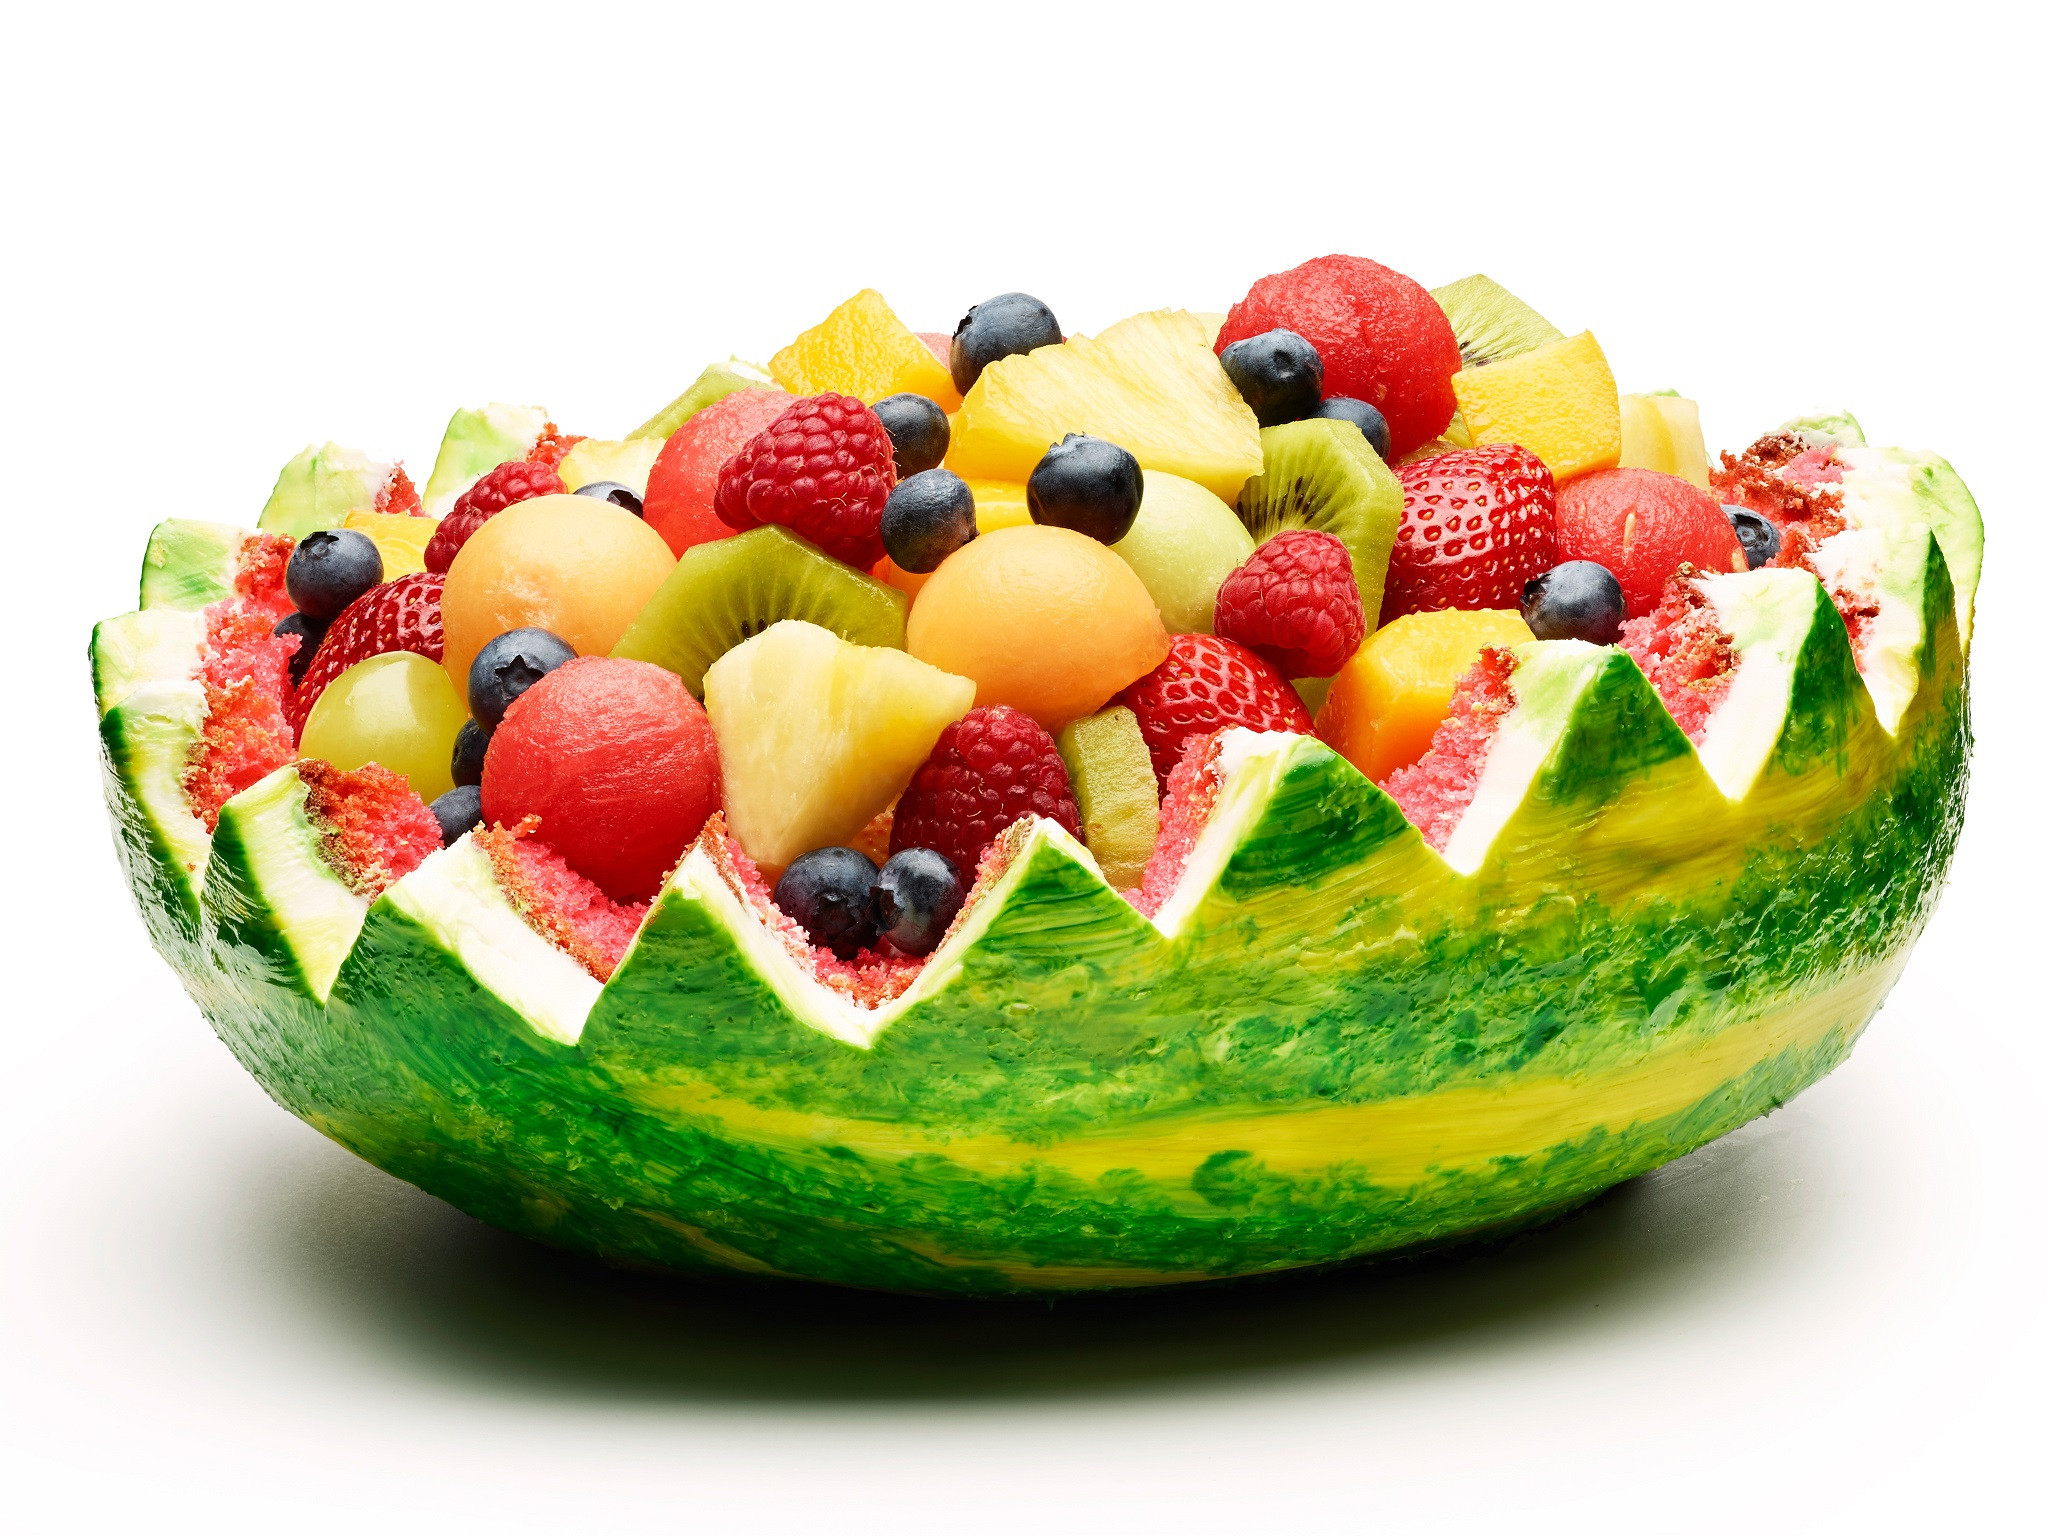 Healthy Fruit Desserts  Healthy Desserts For Outdoor Entertaining